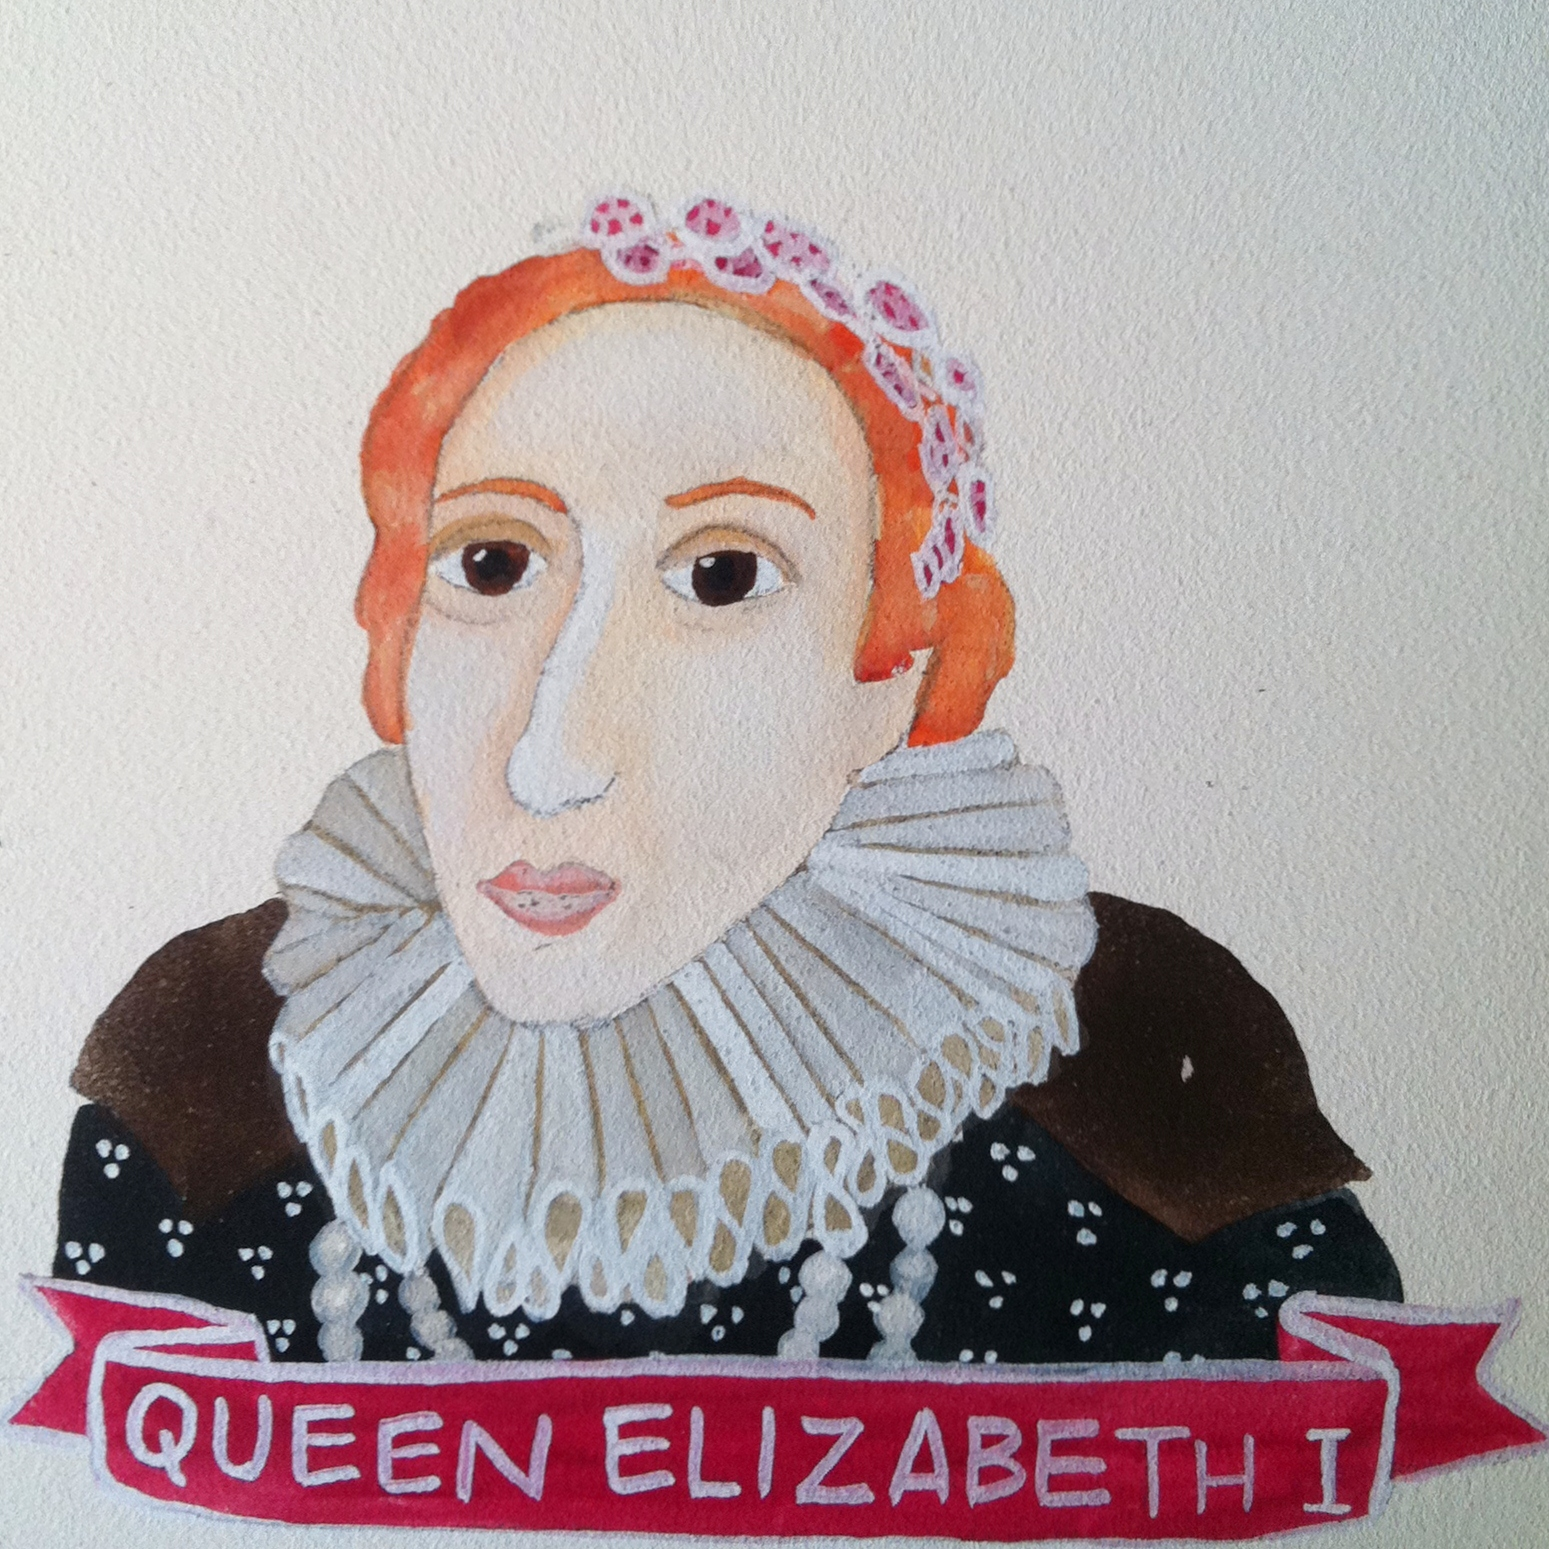 Talent Loves Company at Barbara Archer Gallery: 365 portraits by Lydia Walls - Queen Elizabeth I